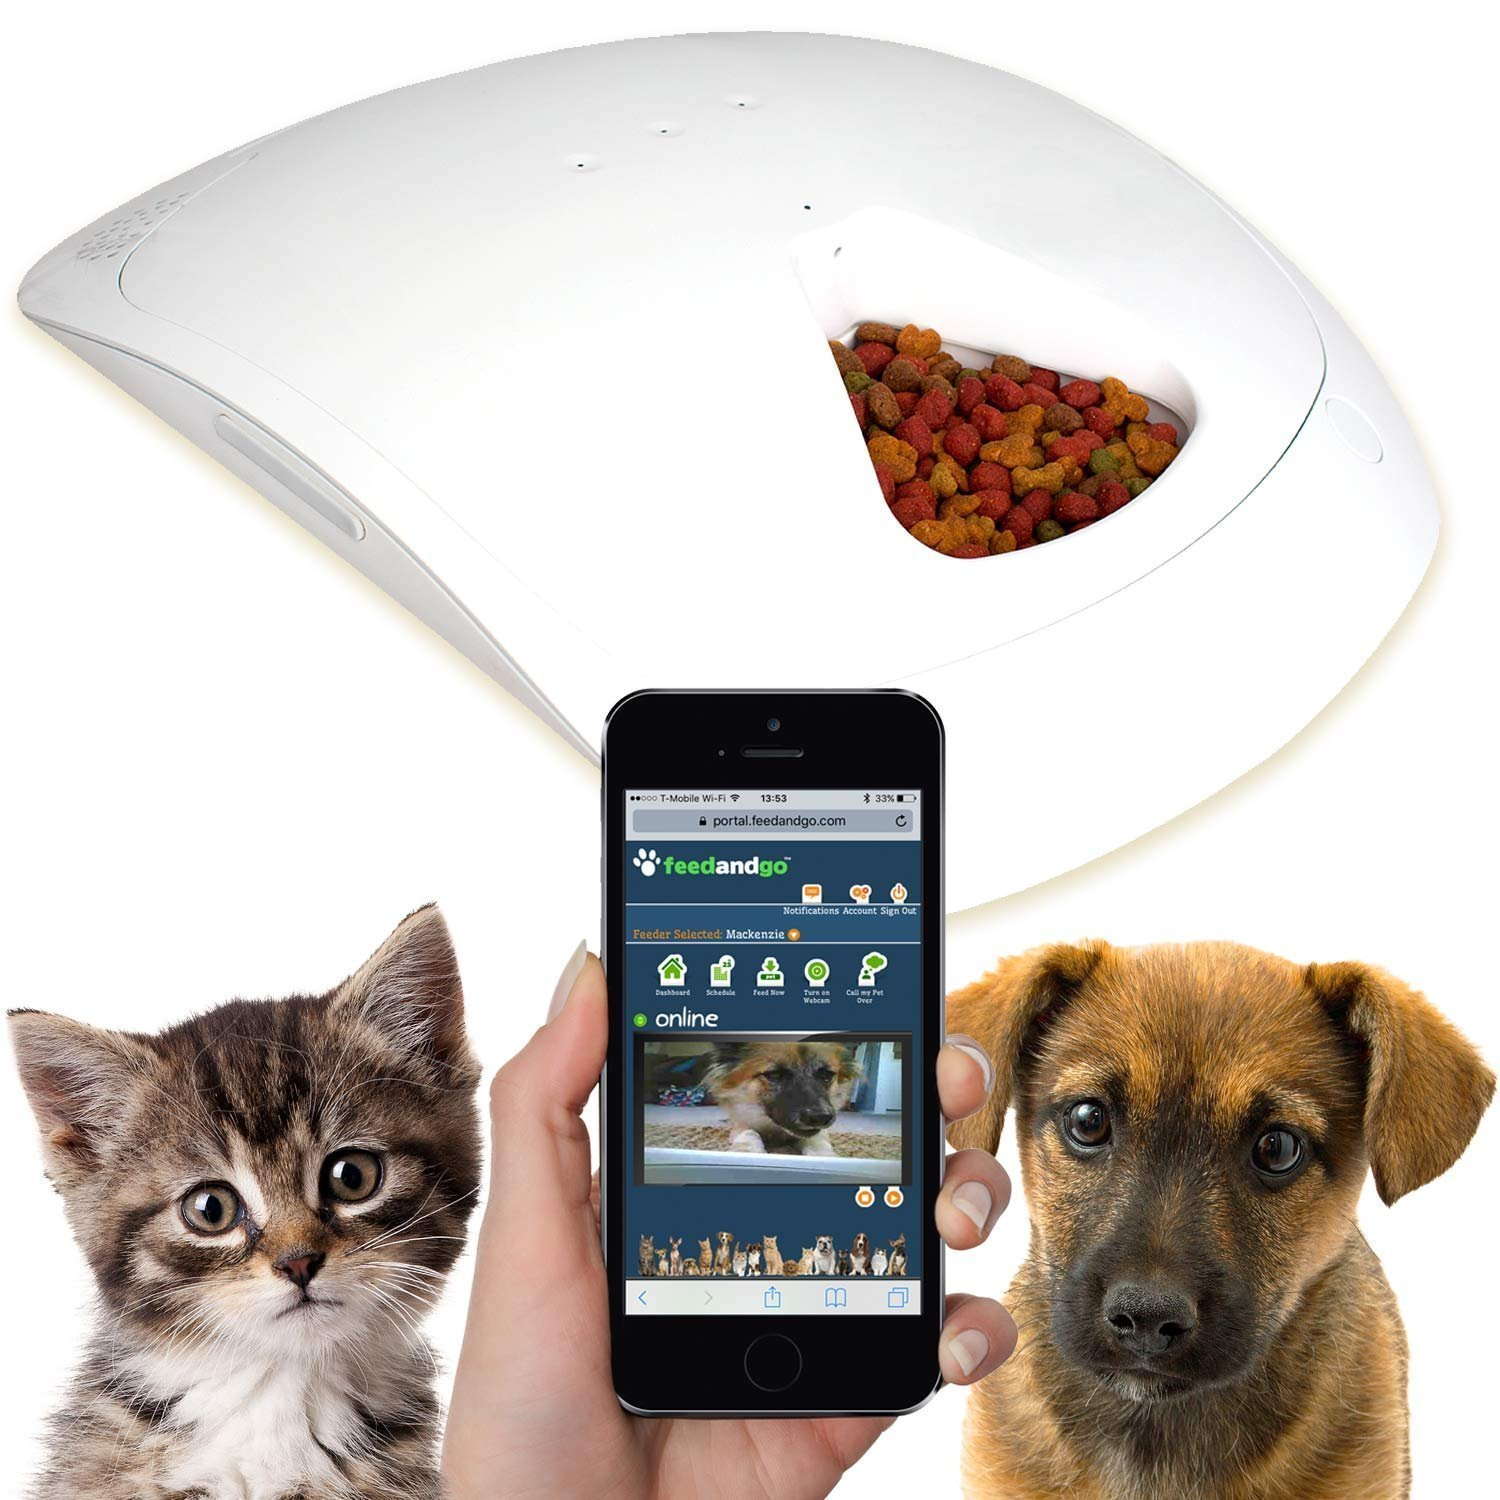 Feed-and-Go-Smart-Pet-Feeder-2018-Model-Now-With-iOSAndroid-Apps-Built-In-Webcam-For-WetDry-Food-Treats-Meds 10 Best Automatic Pet Feeders